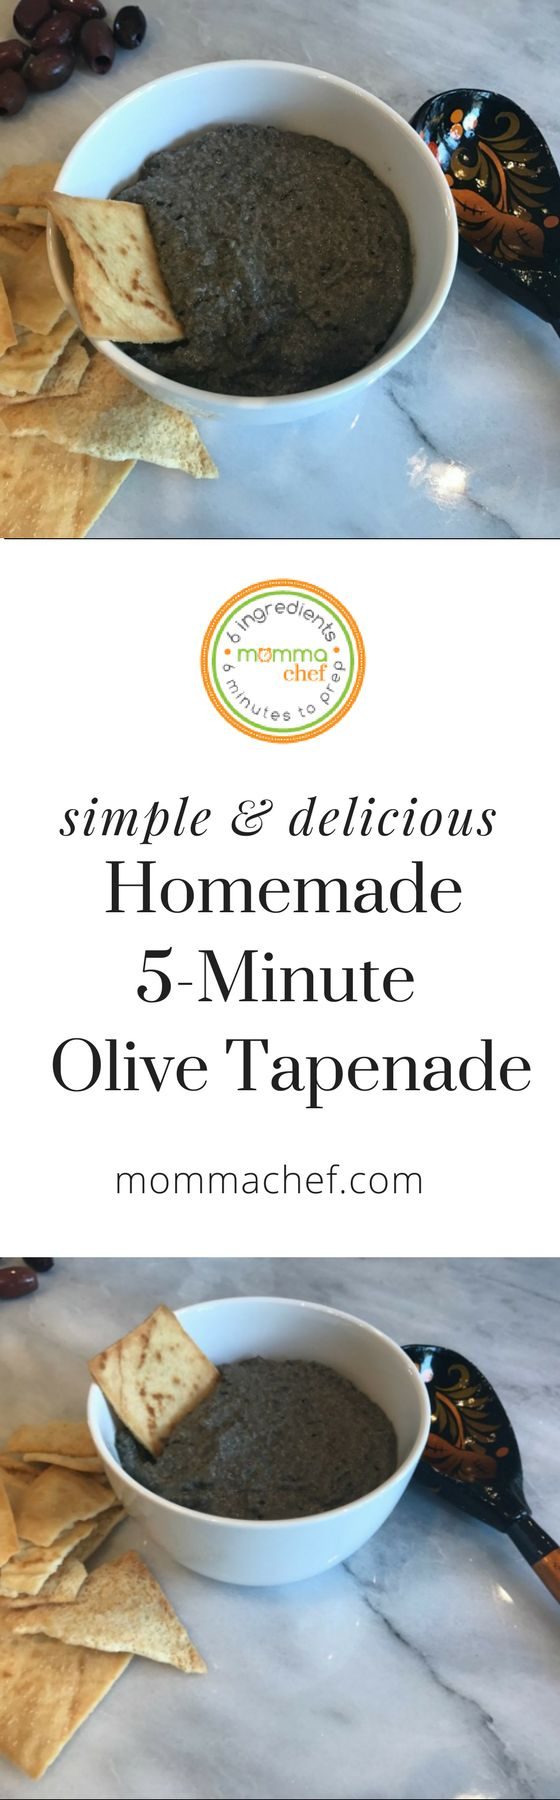 Prepare to impress with this delicious and easy Olive Tapenade recipe. A perfect appetizer for game day or a family get together. This dip is ready in just 5 minutes!